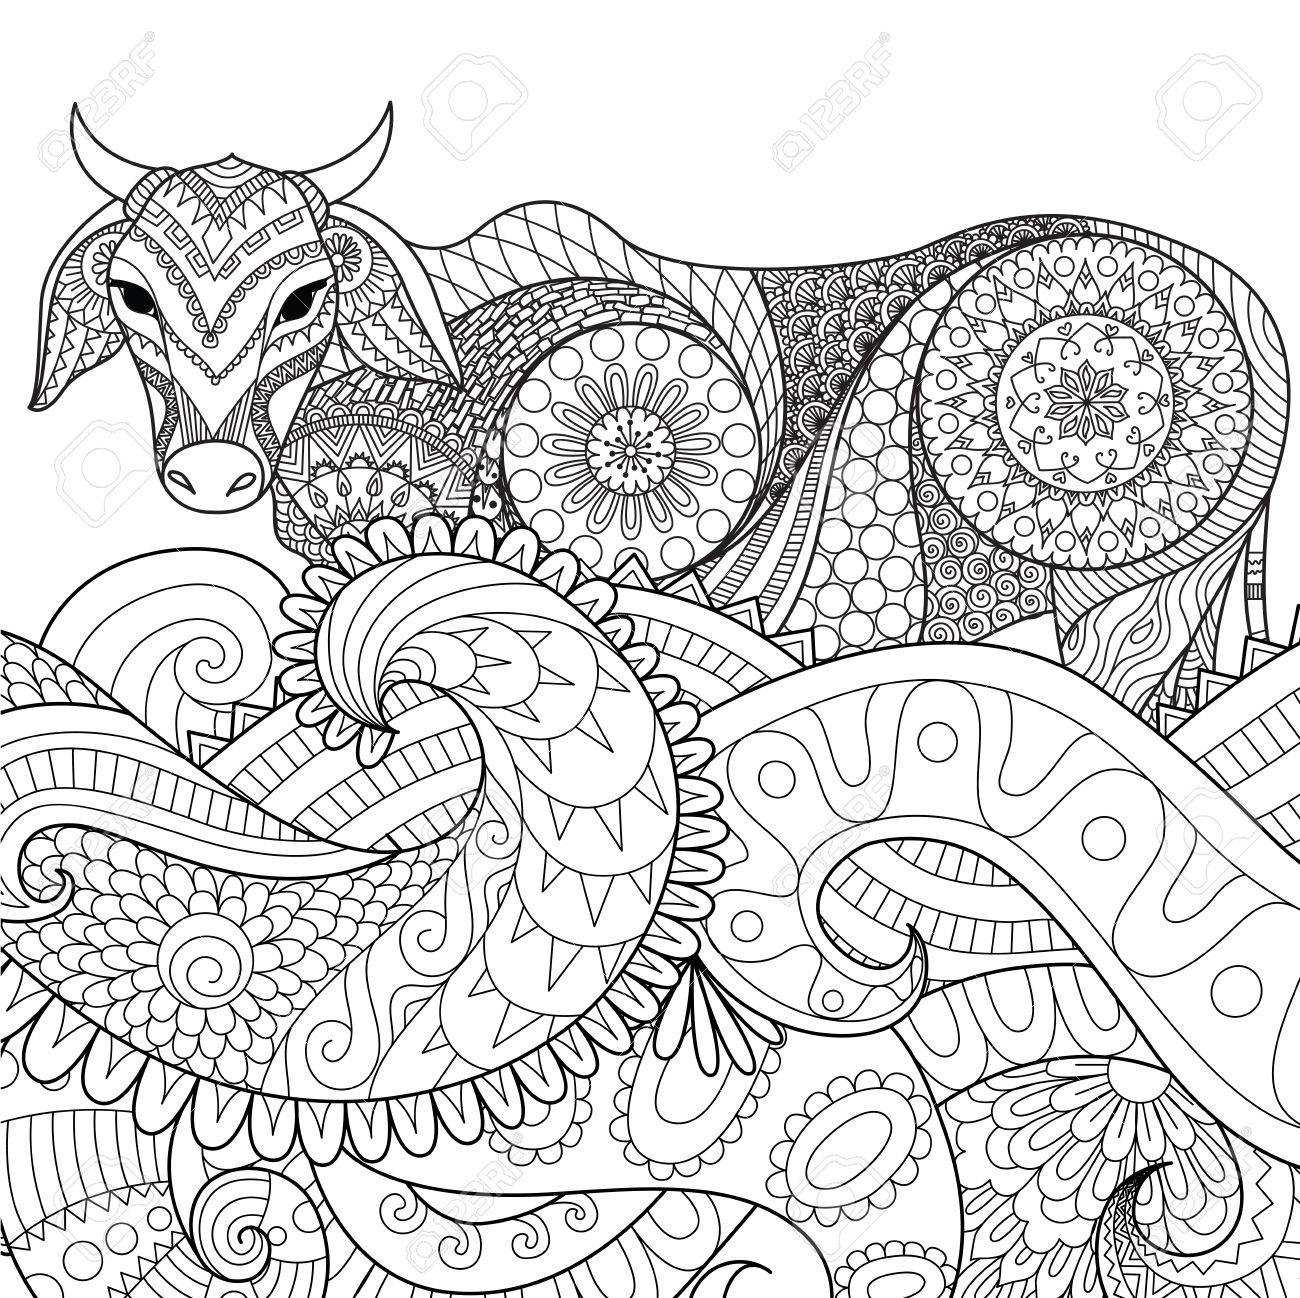 Zendoodle Design Of Cow Swimming In The Ocean For Adult Coloring